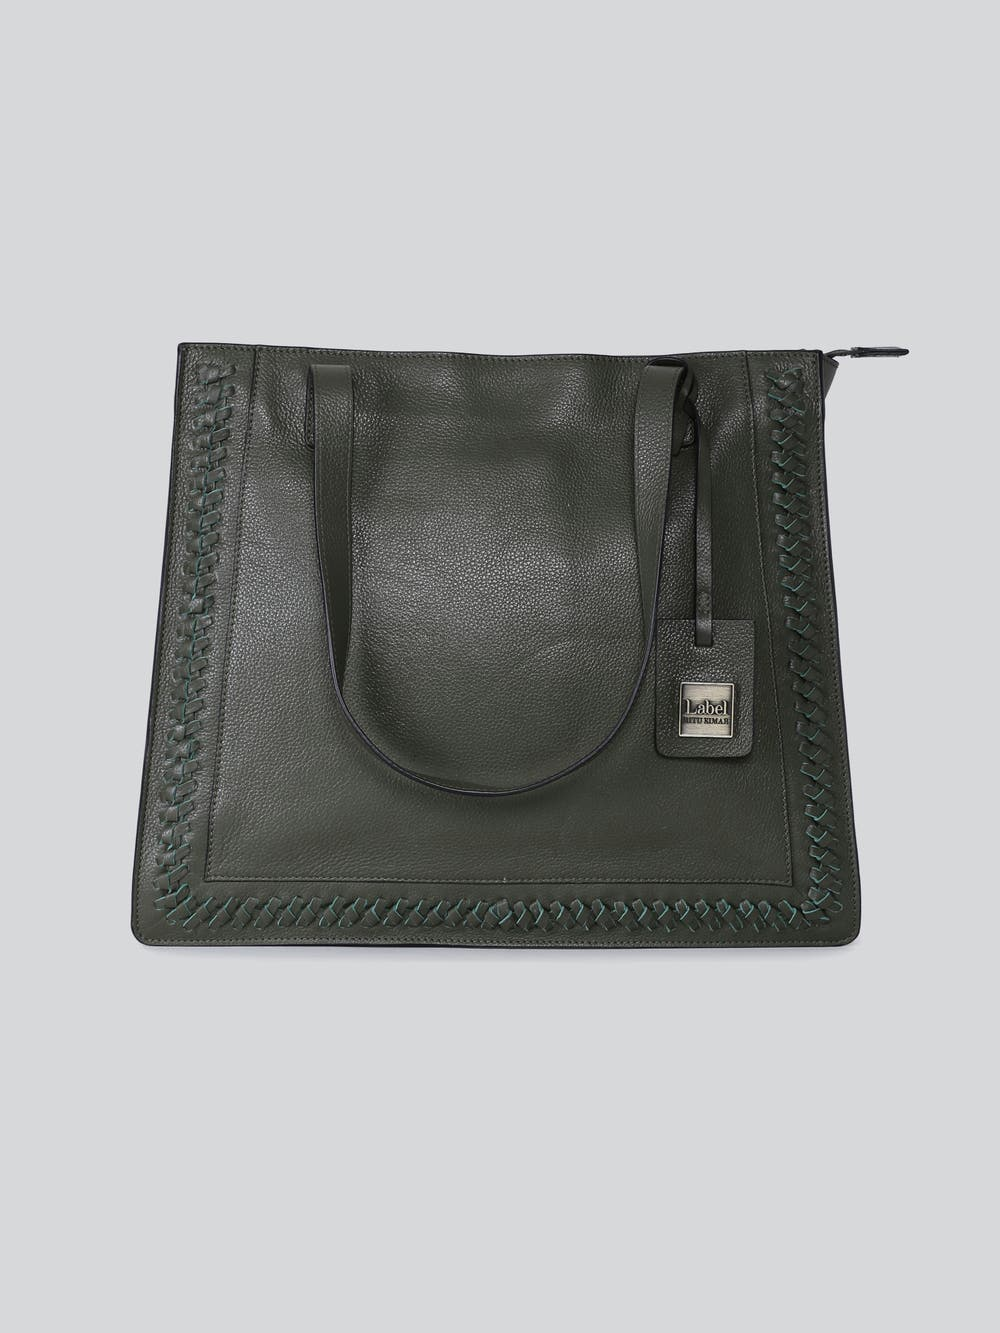 Olive Green Leather Shoulder Bag